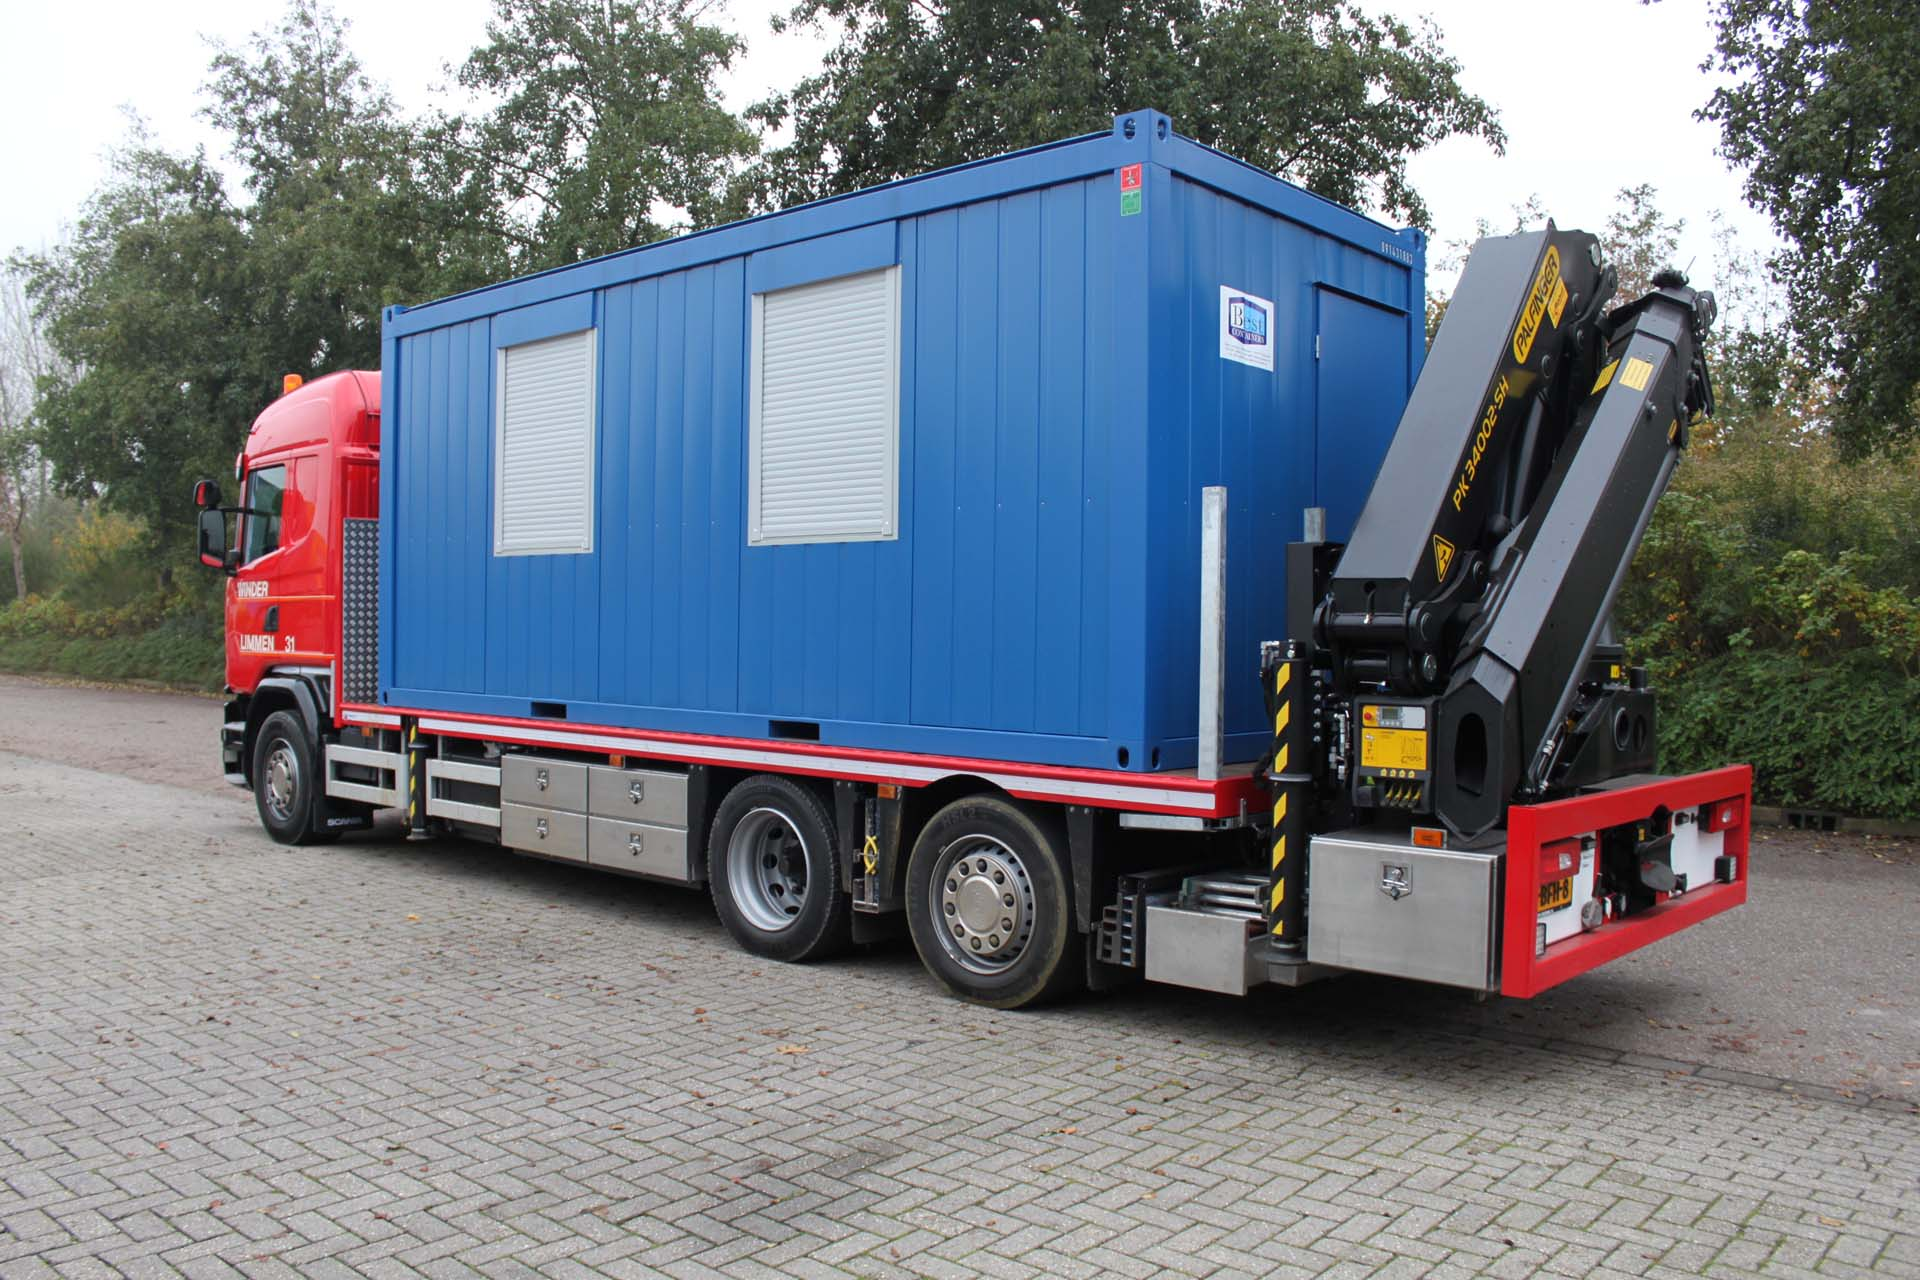 20 ft Kantoorunit op vrachttransport